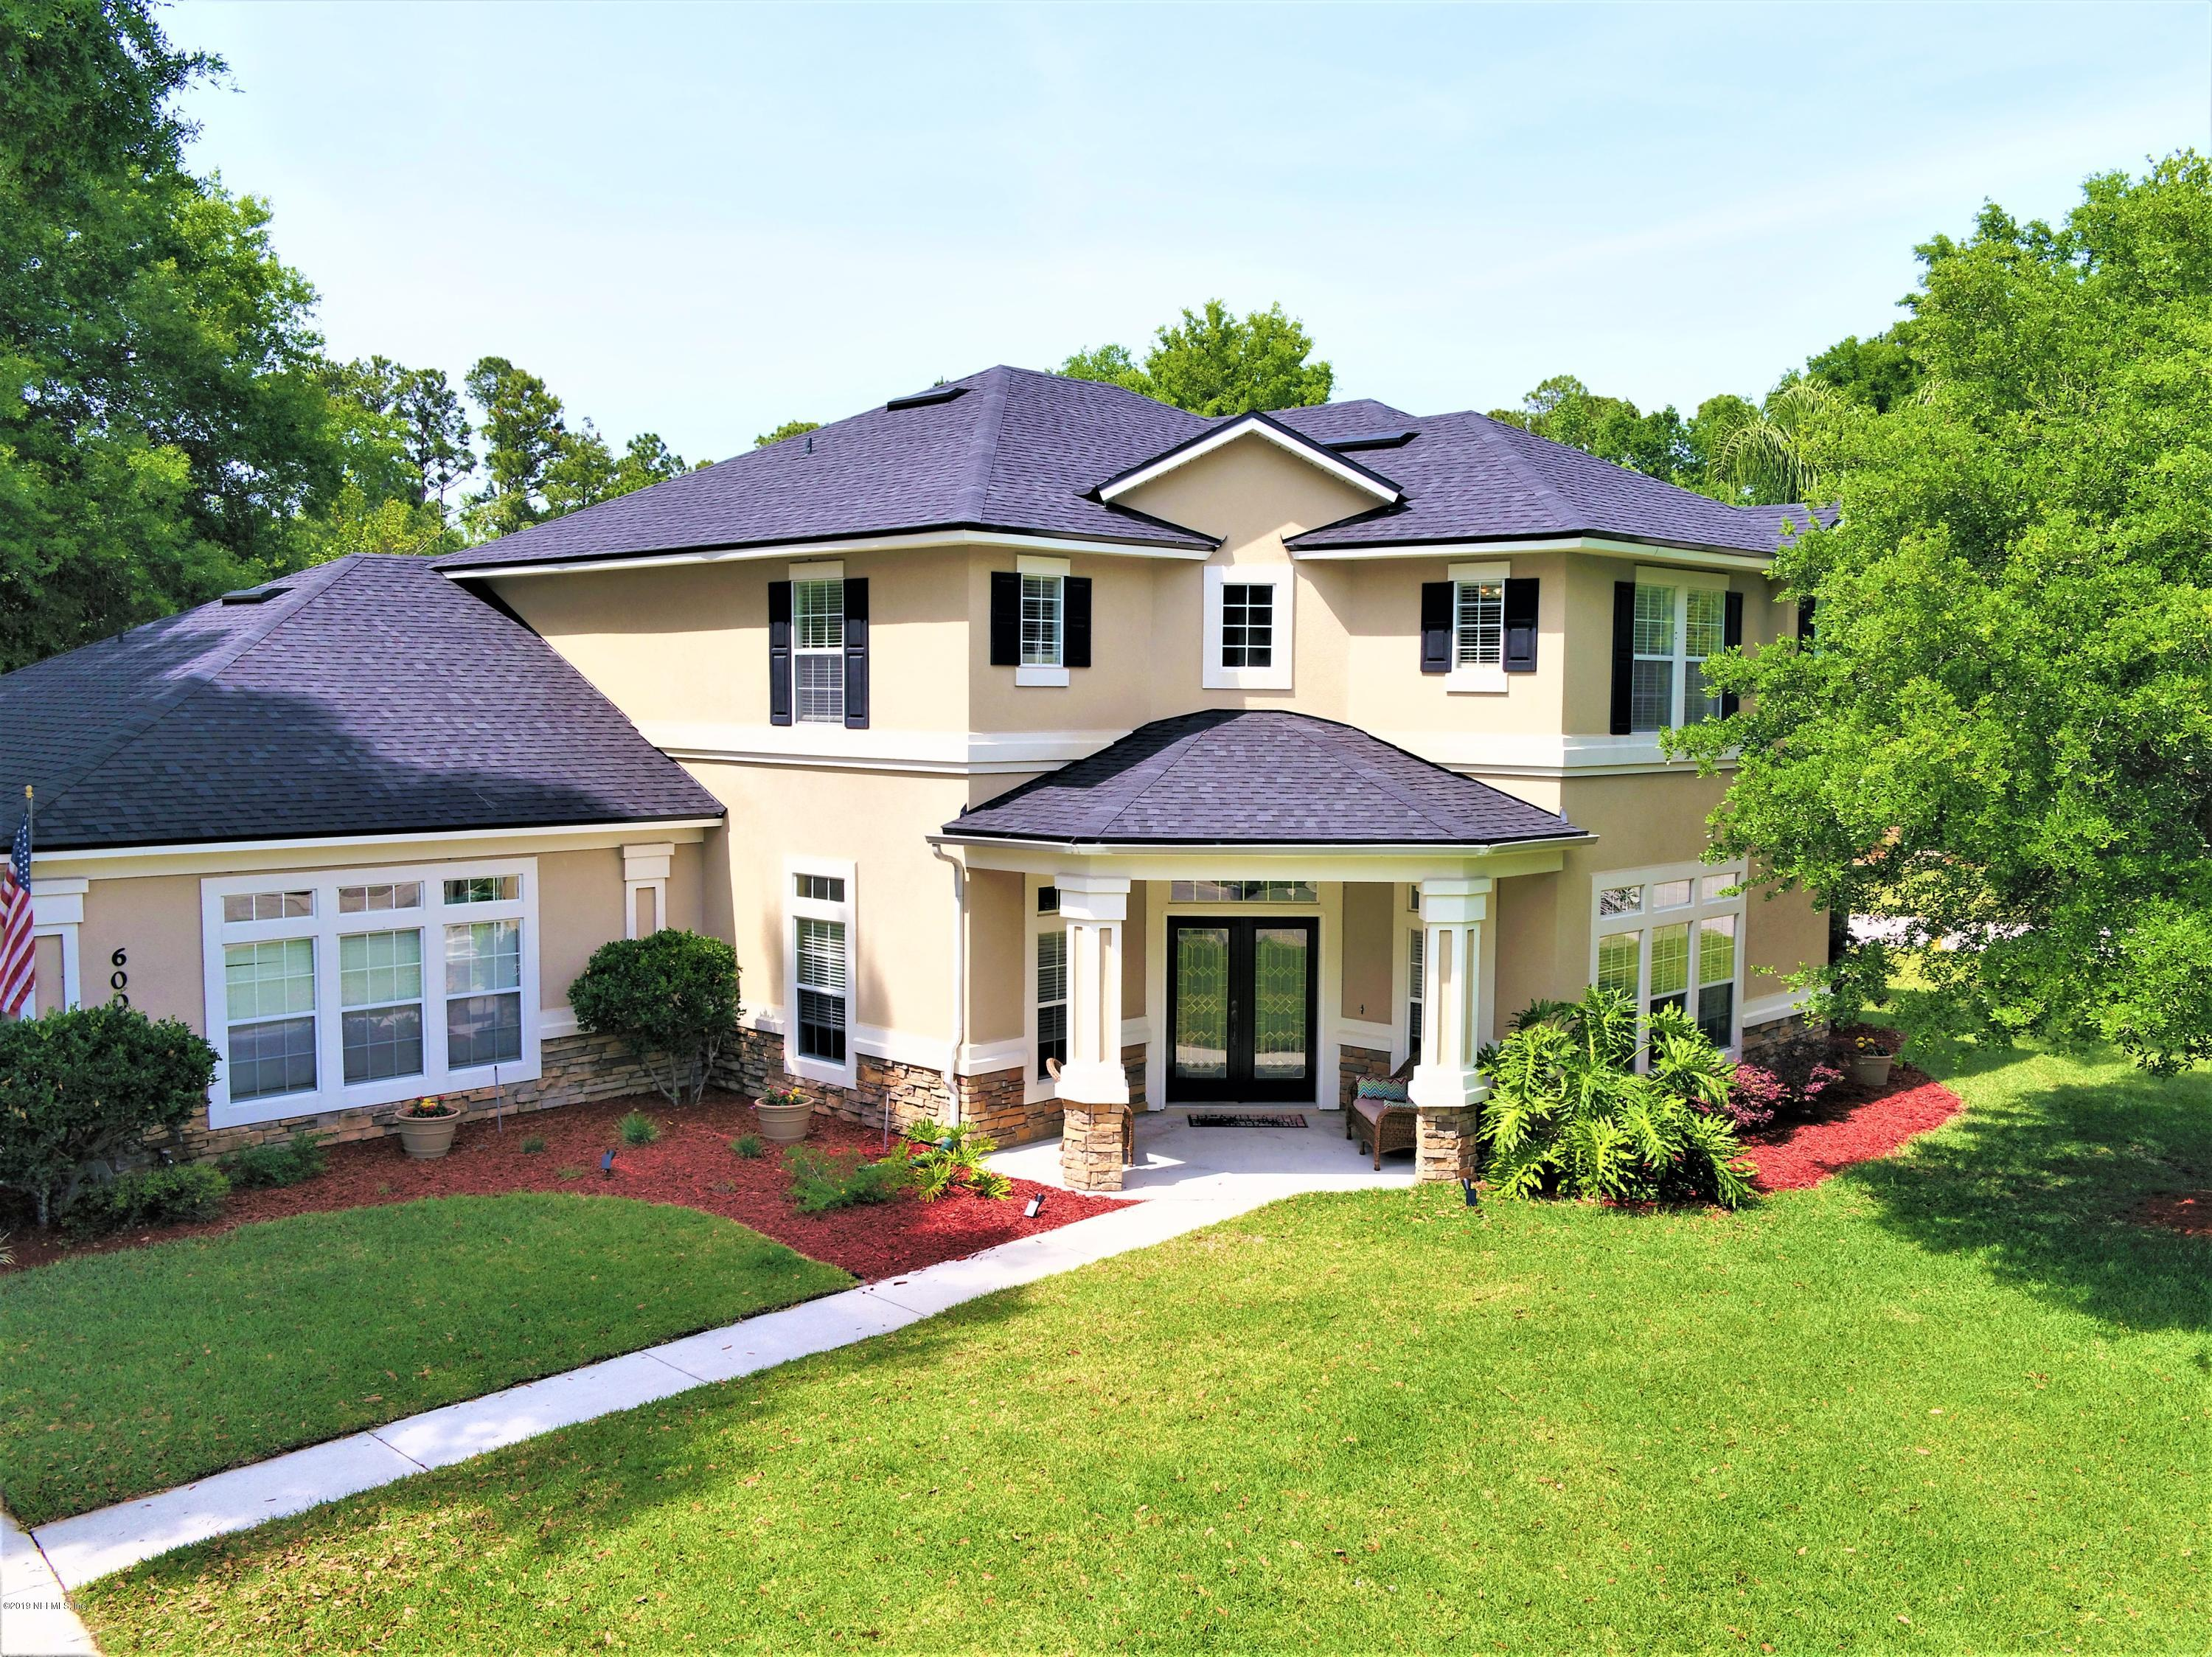 600  SWEETWATER BRANCH LN, Julington Creek in ST. JOHNS County, FL 32259 Home for Sale